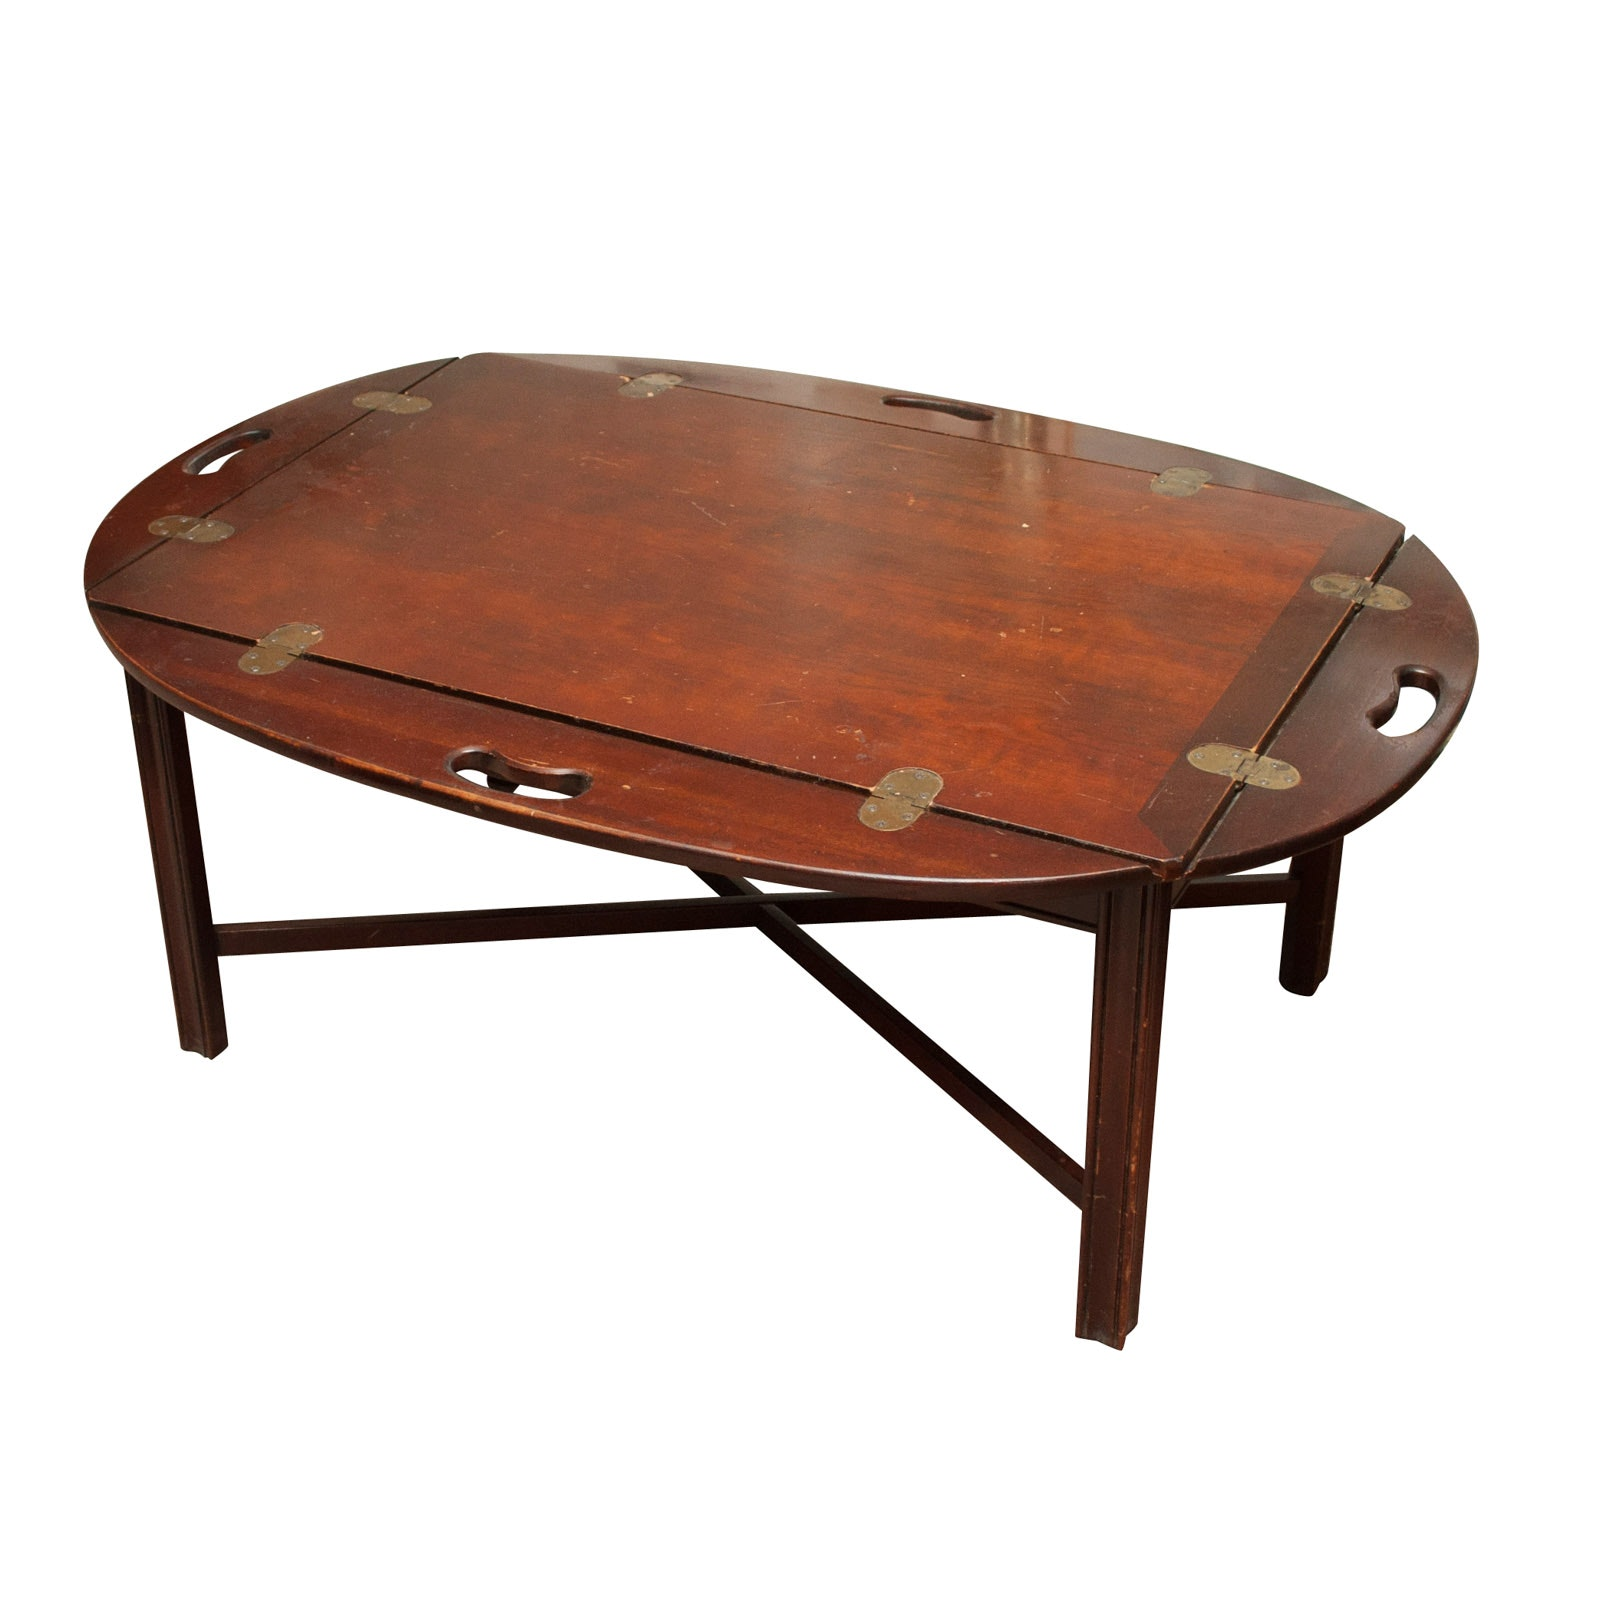 Mahogany Butler's Tray Coffee Table, Mid to Late 20th Century